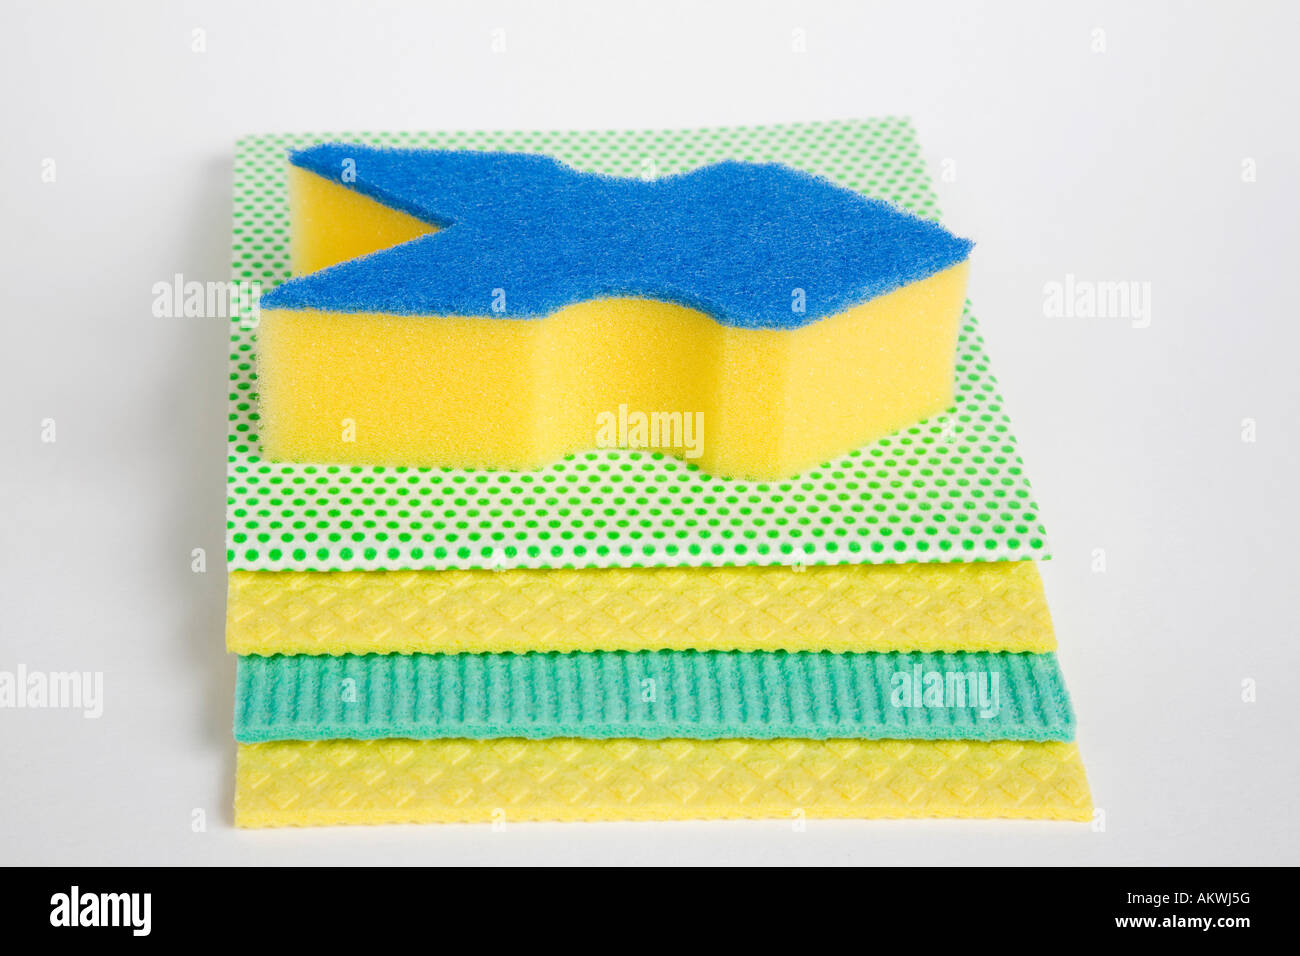 Sponge and clothes, close-up - Stock Image